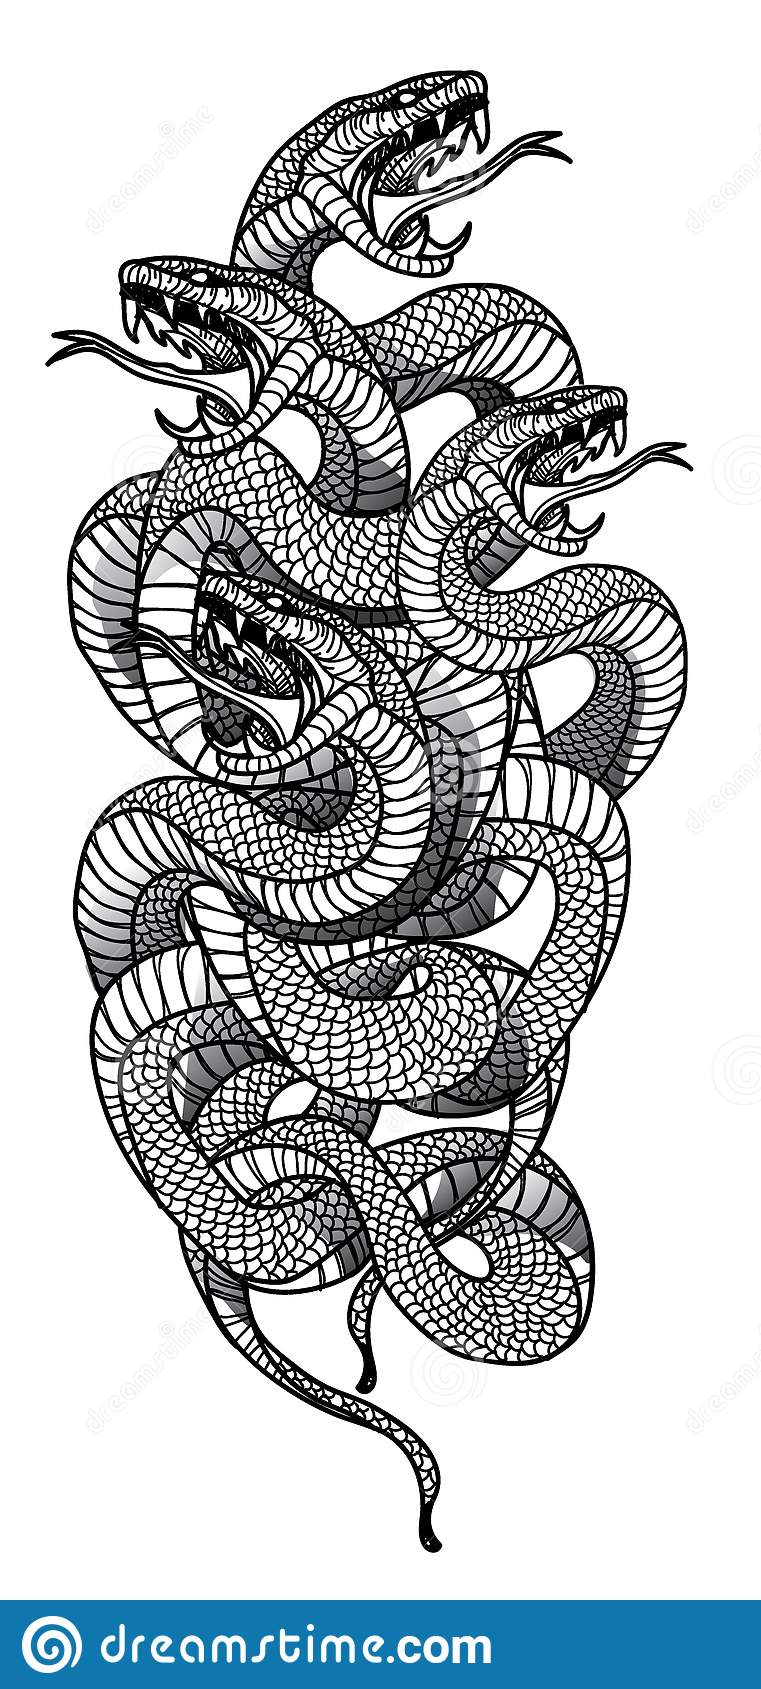 Tattoo Art Snake Hand Drawing And Sketch Black And White